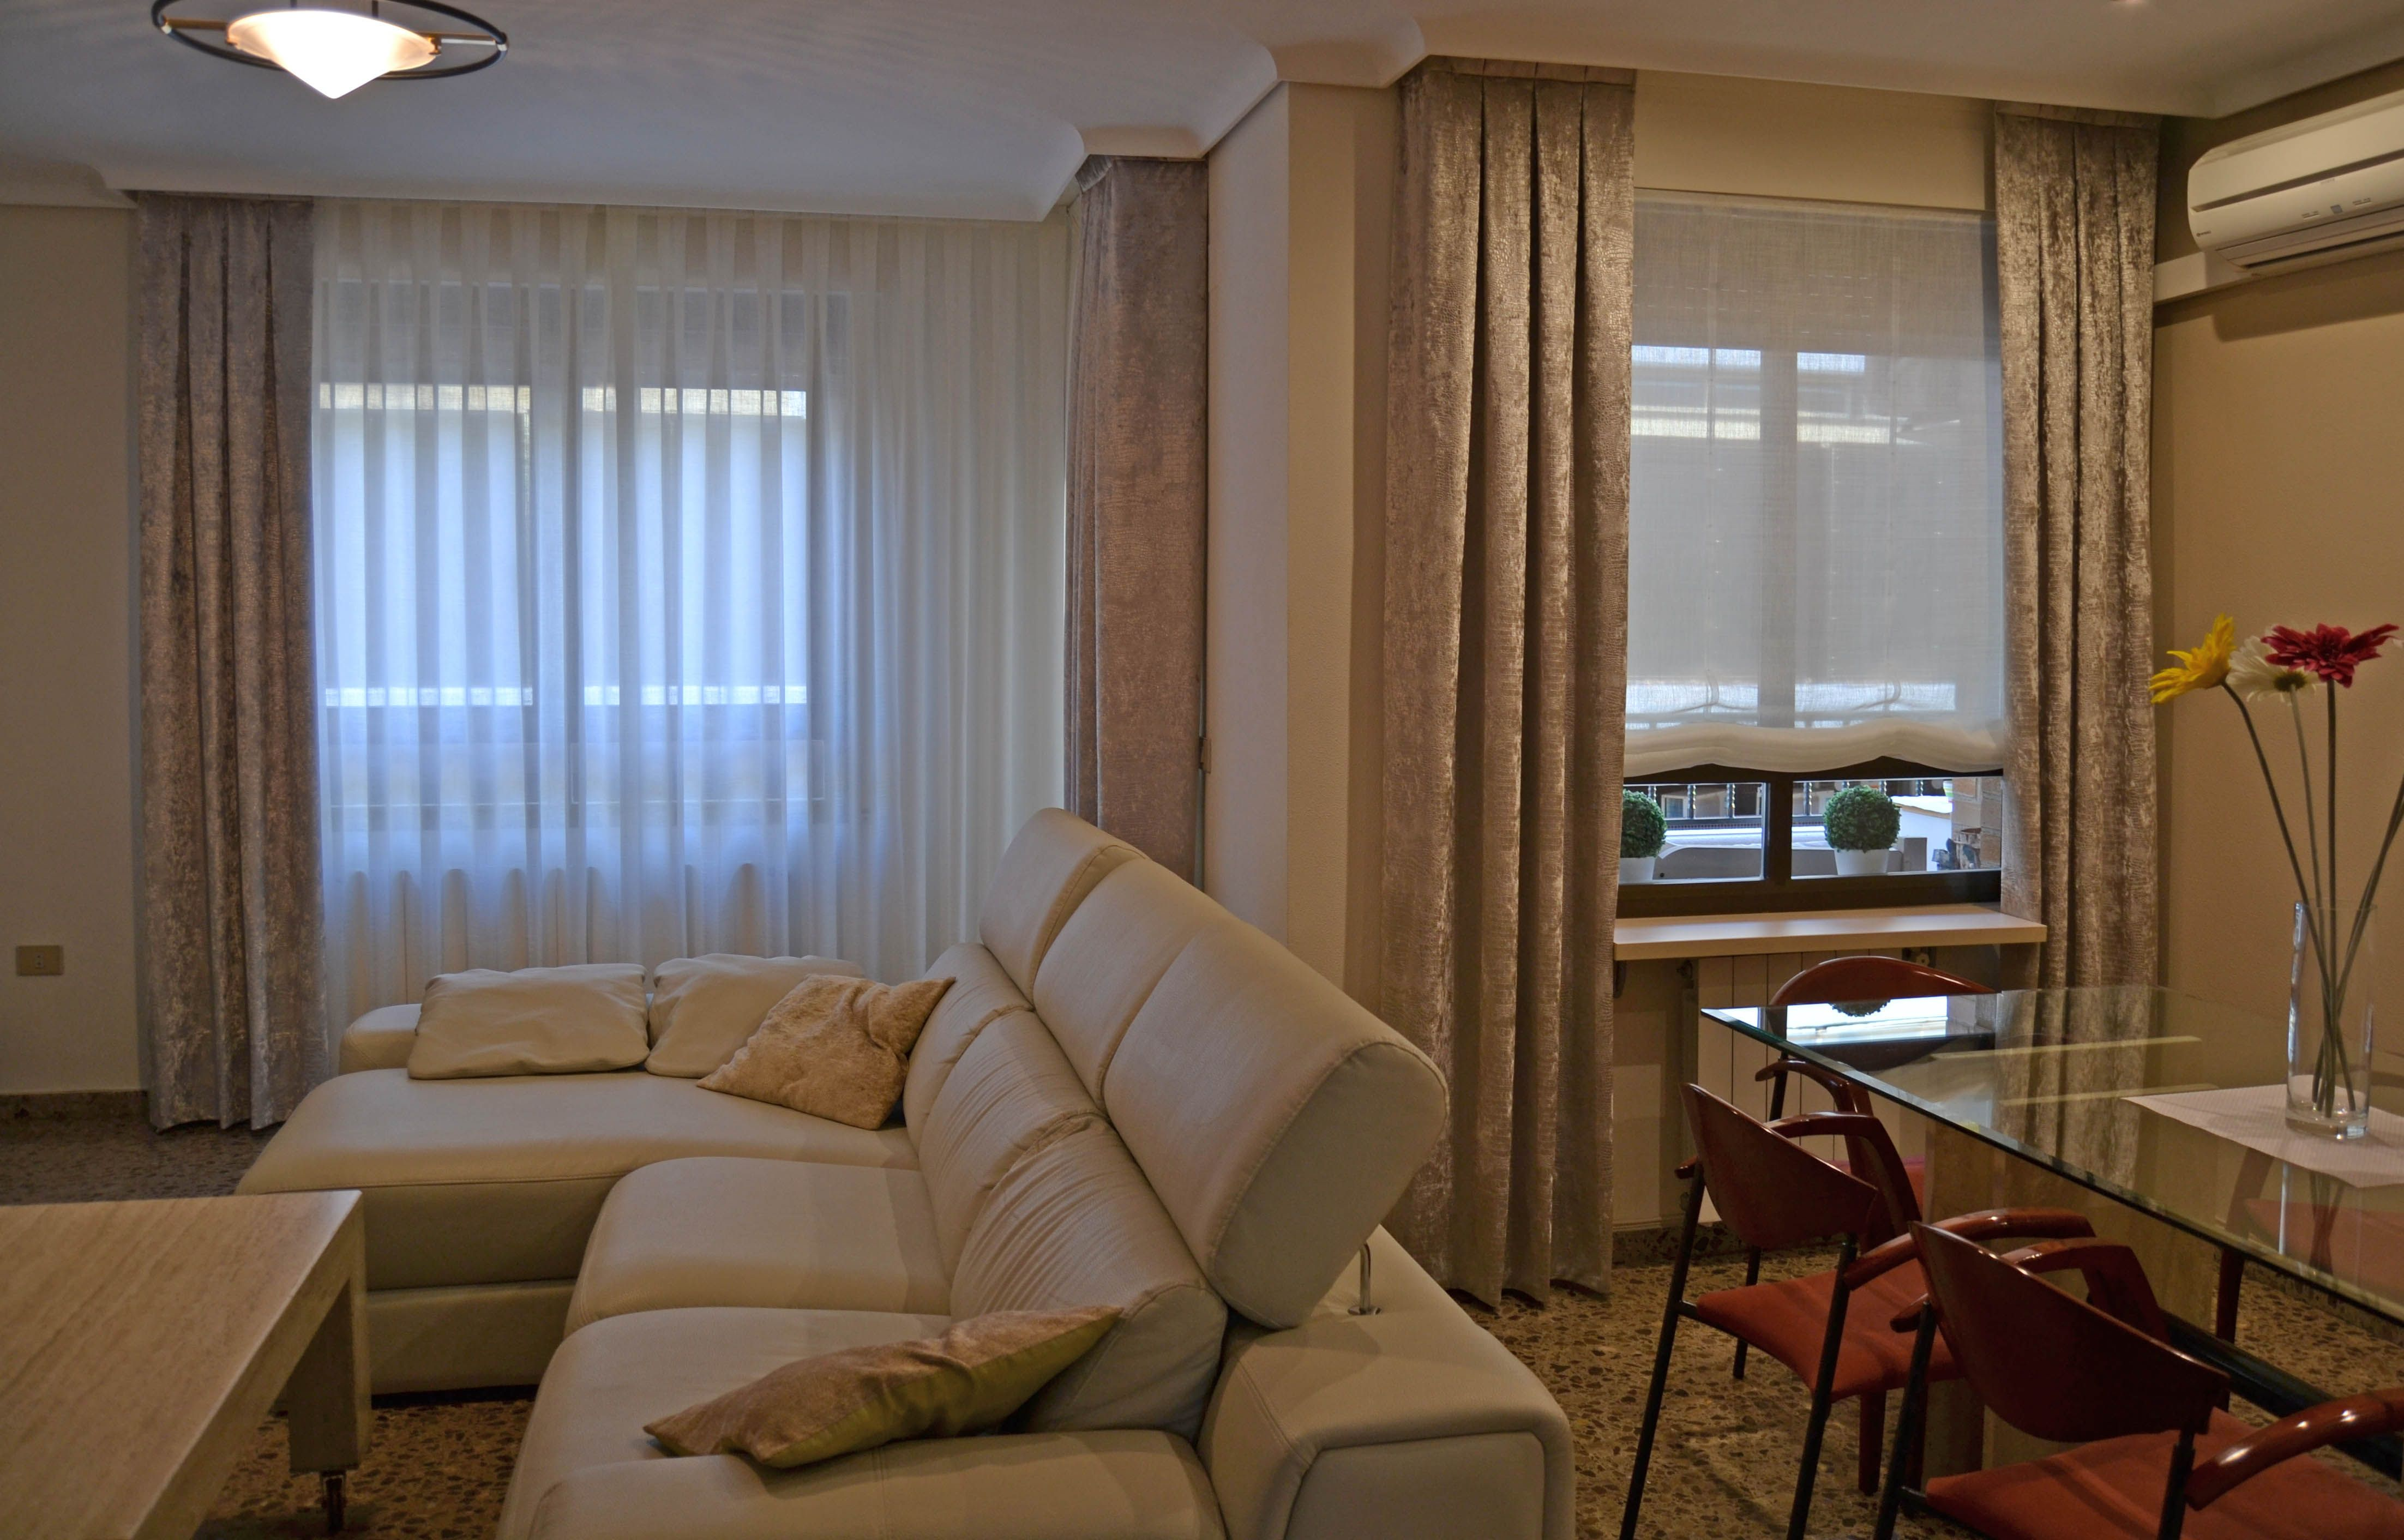 Un sal n con dobles cortinas villalba interiorismo for Cortinas salon gris